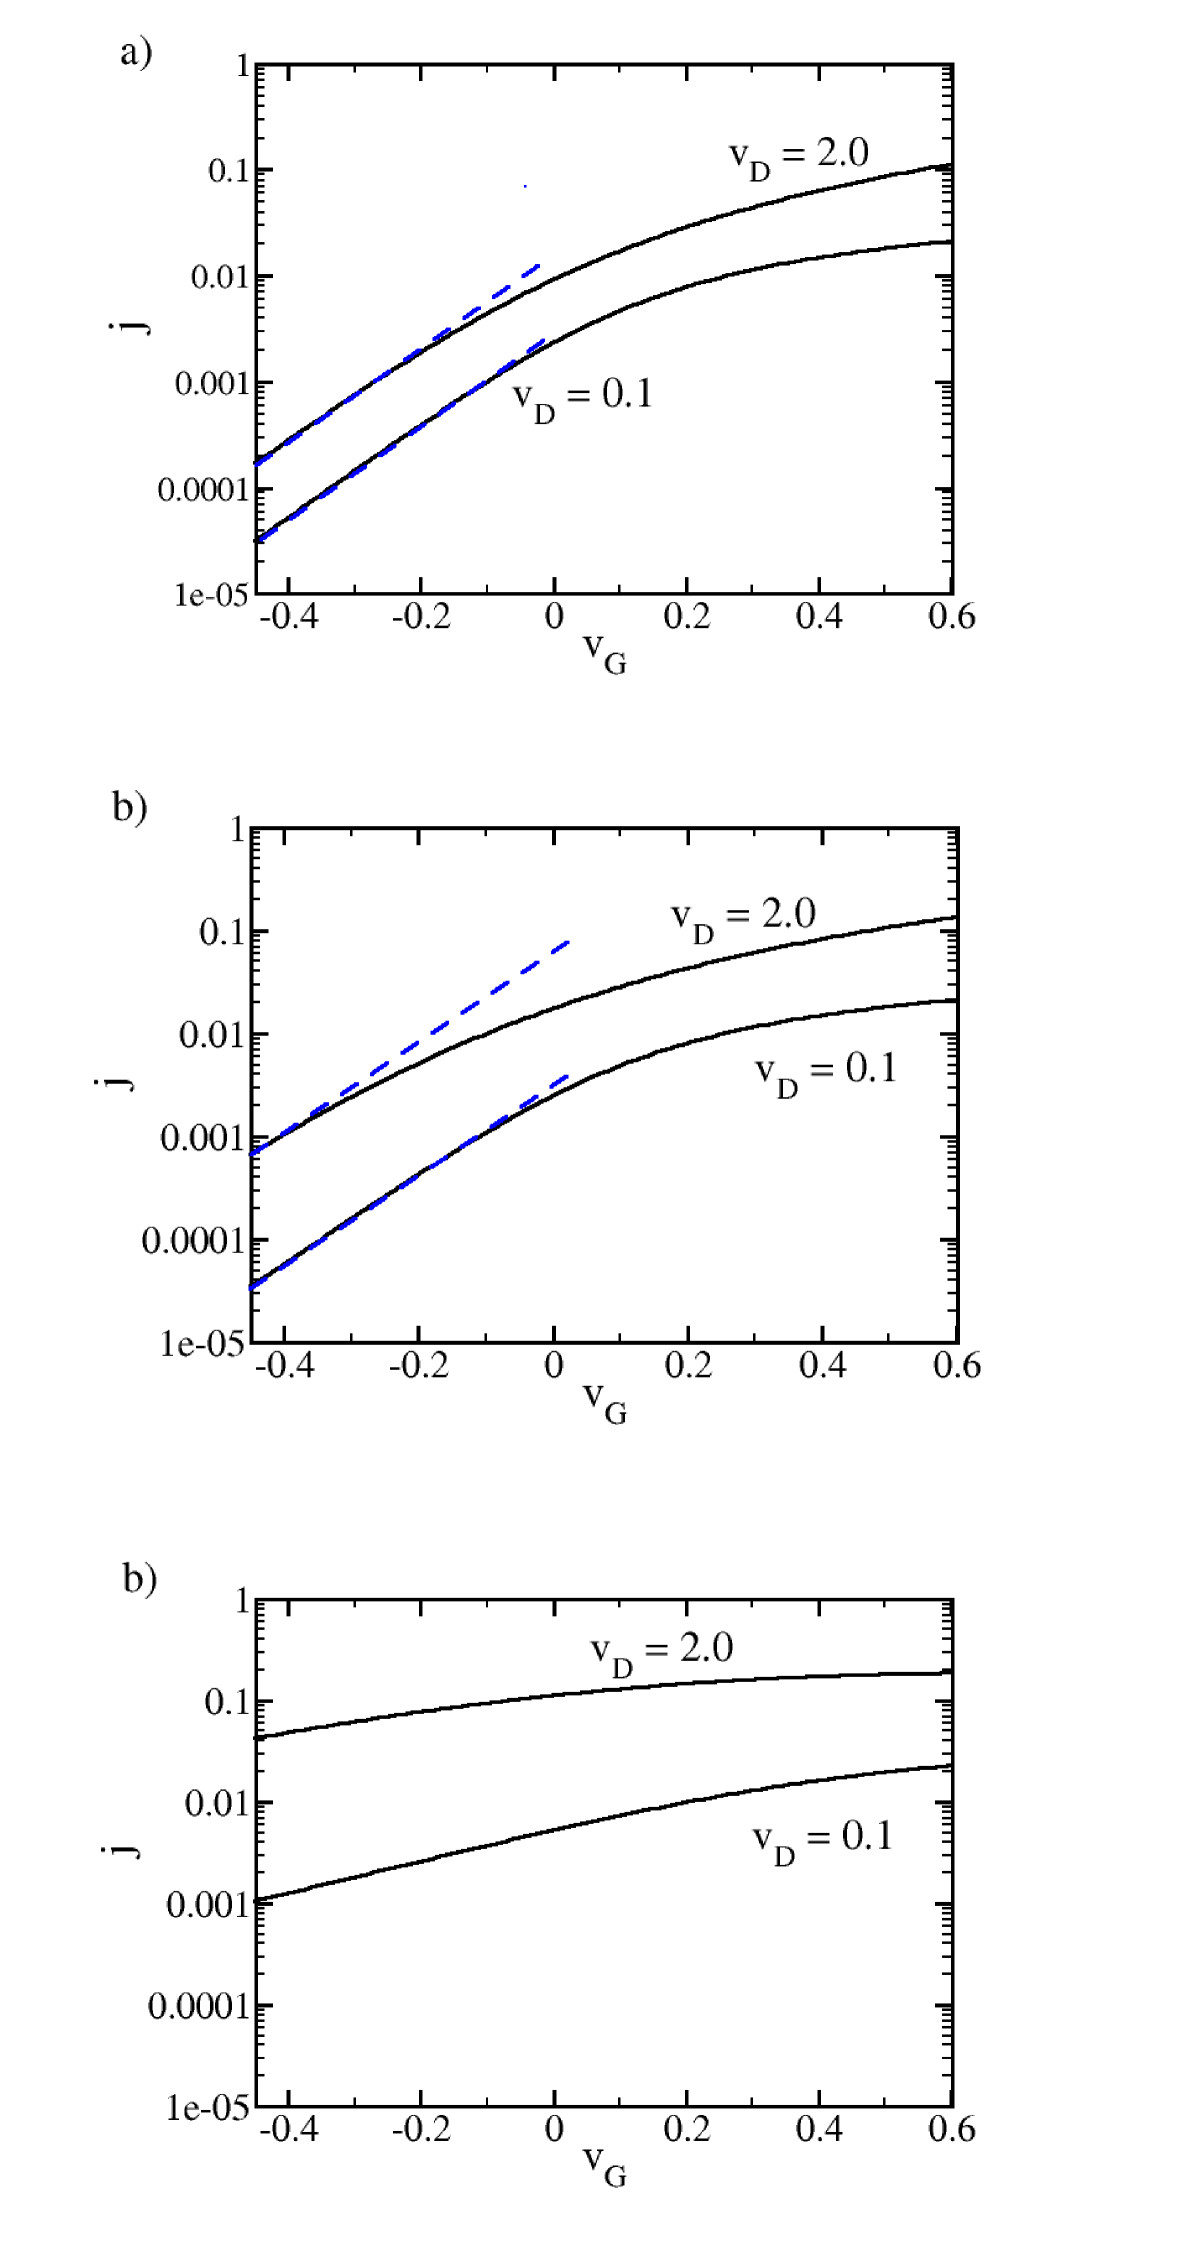 http://static-content.springer.com/image/art%3A10.1186%2F1556-276X-6-365/MediaObjects/11671_2010_Article_481_Fig6_HTML.jpg